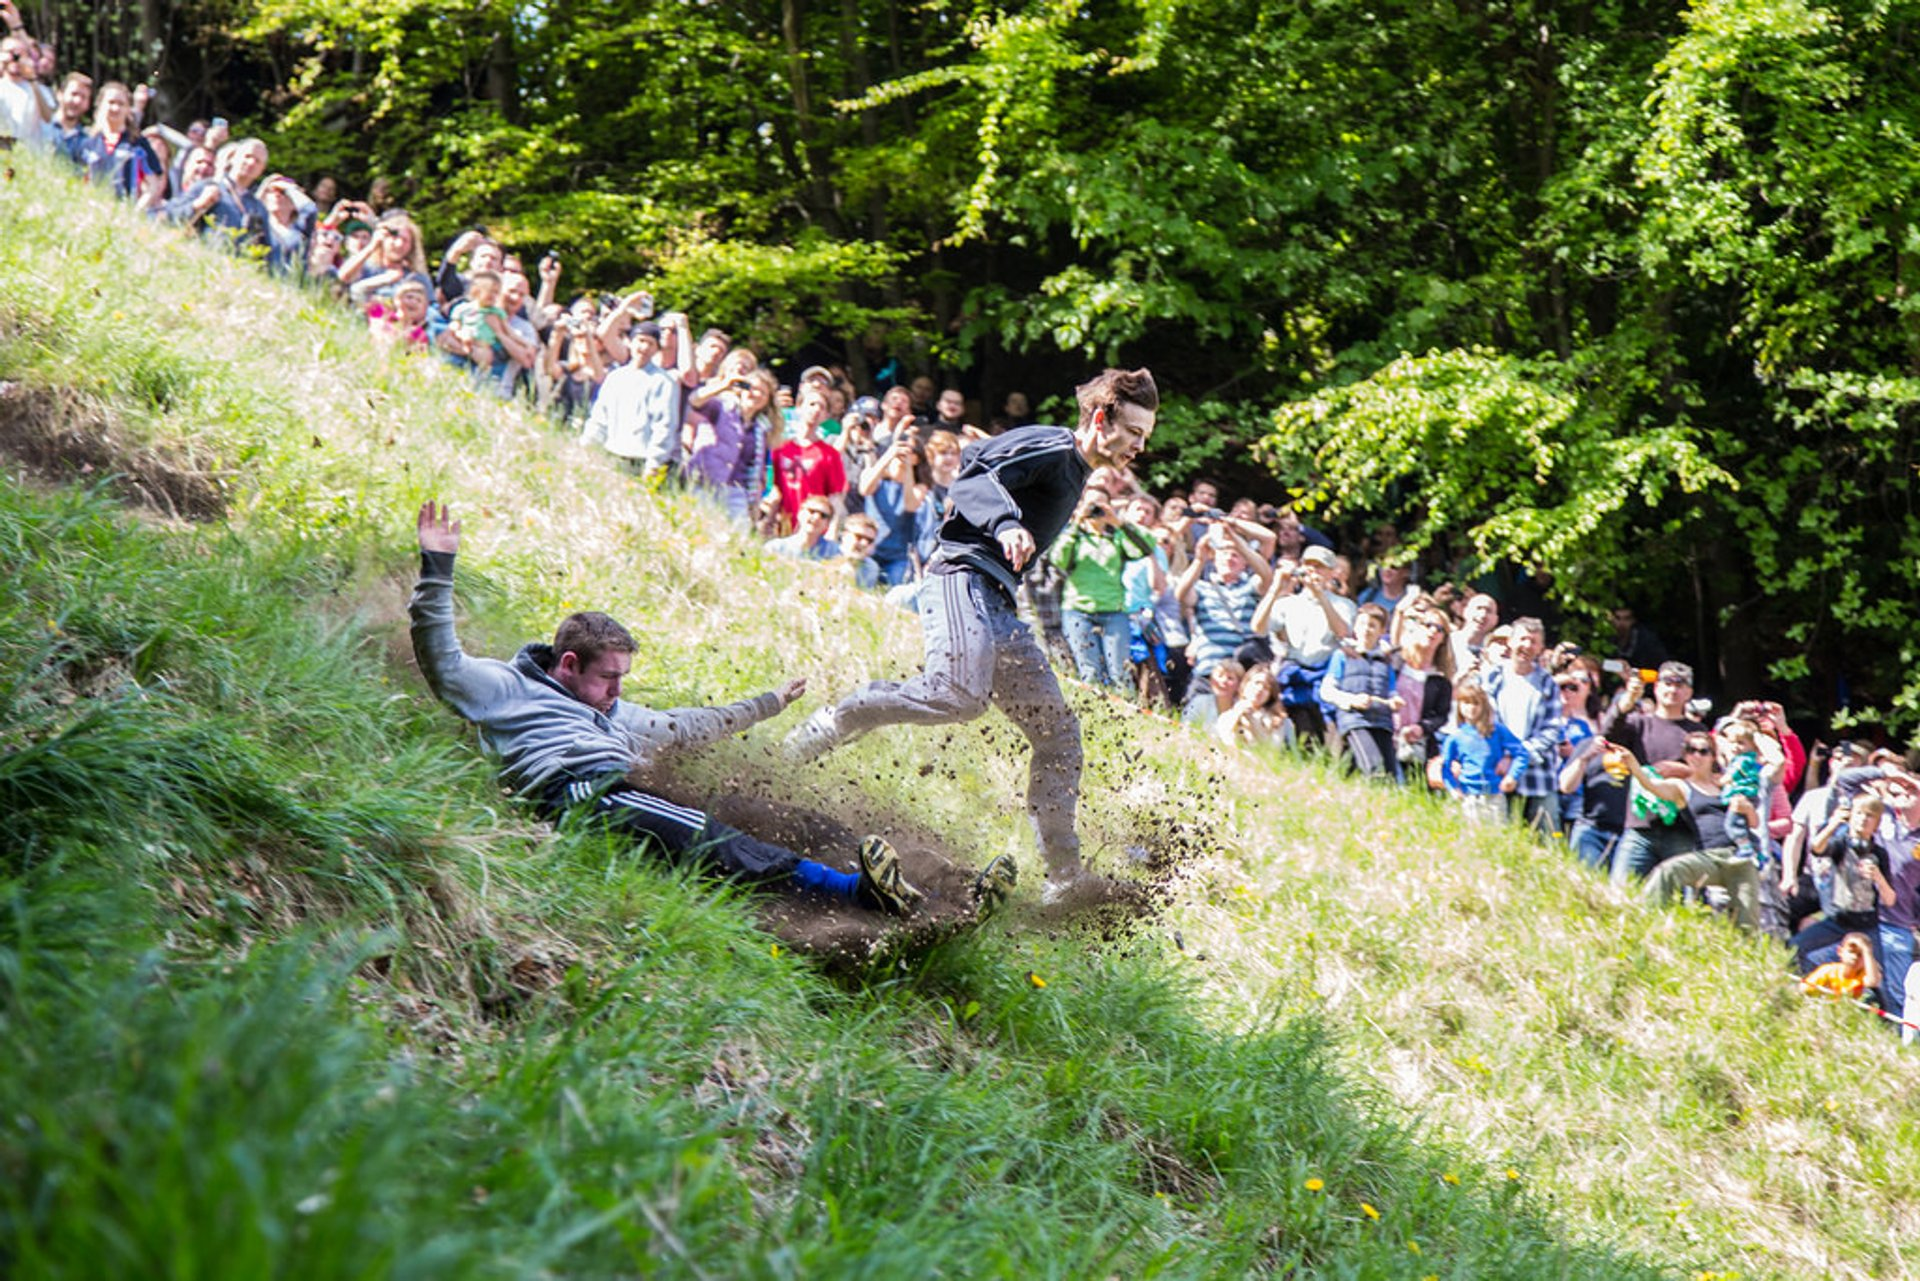 Best time for Cooper's Hill Cheese-Rolling and Wake in England 2020